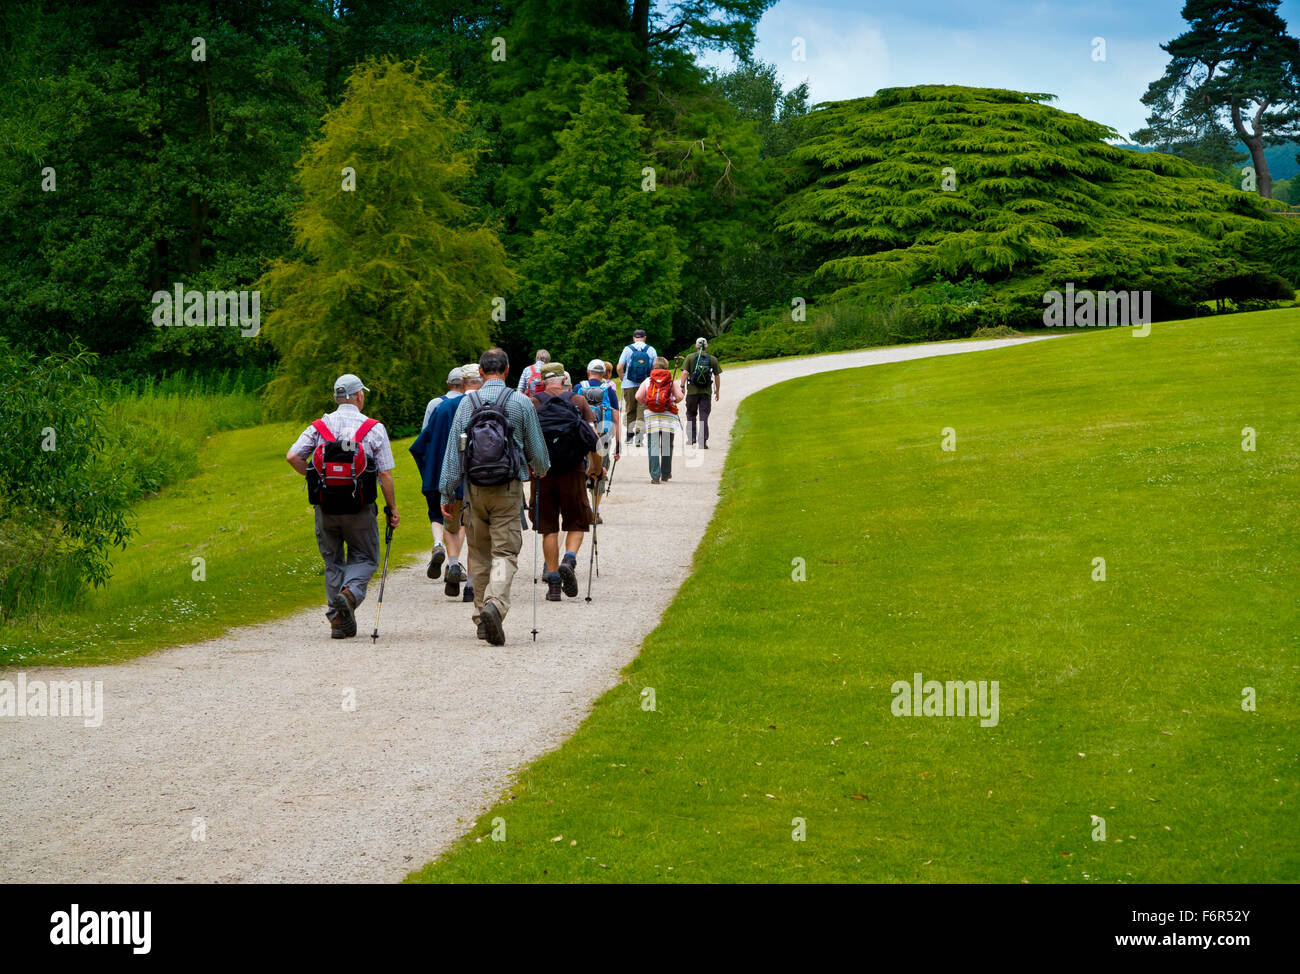 Group of hikers on an organised walk on a path through a country park in Nottinghamshire England UK - Stock Image